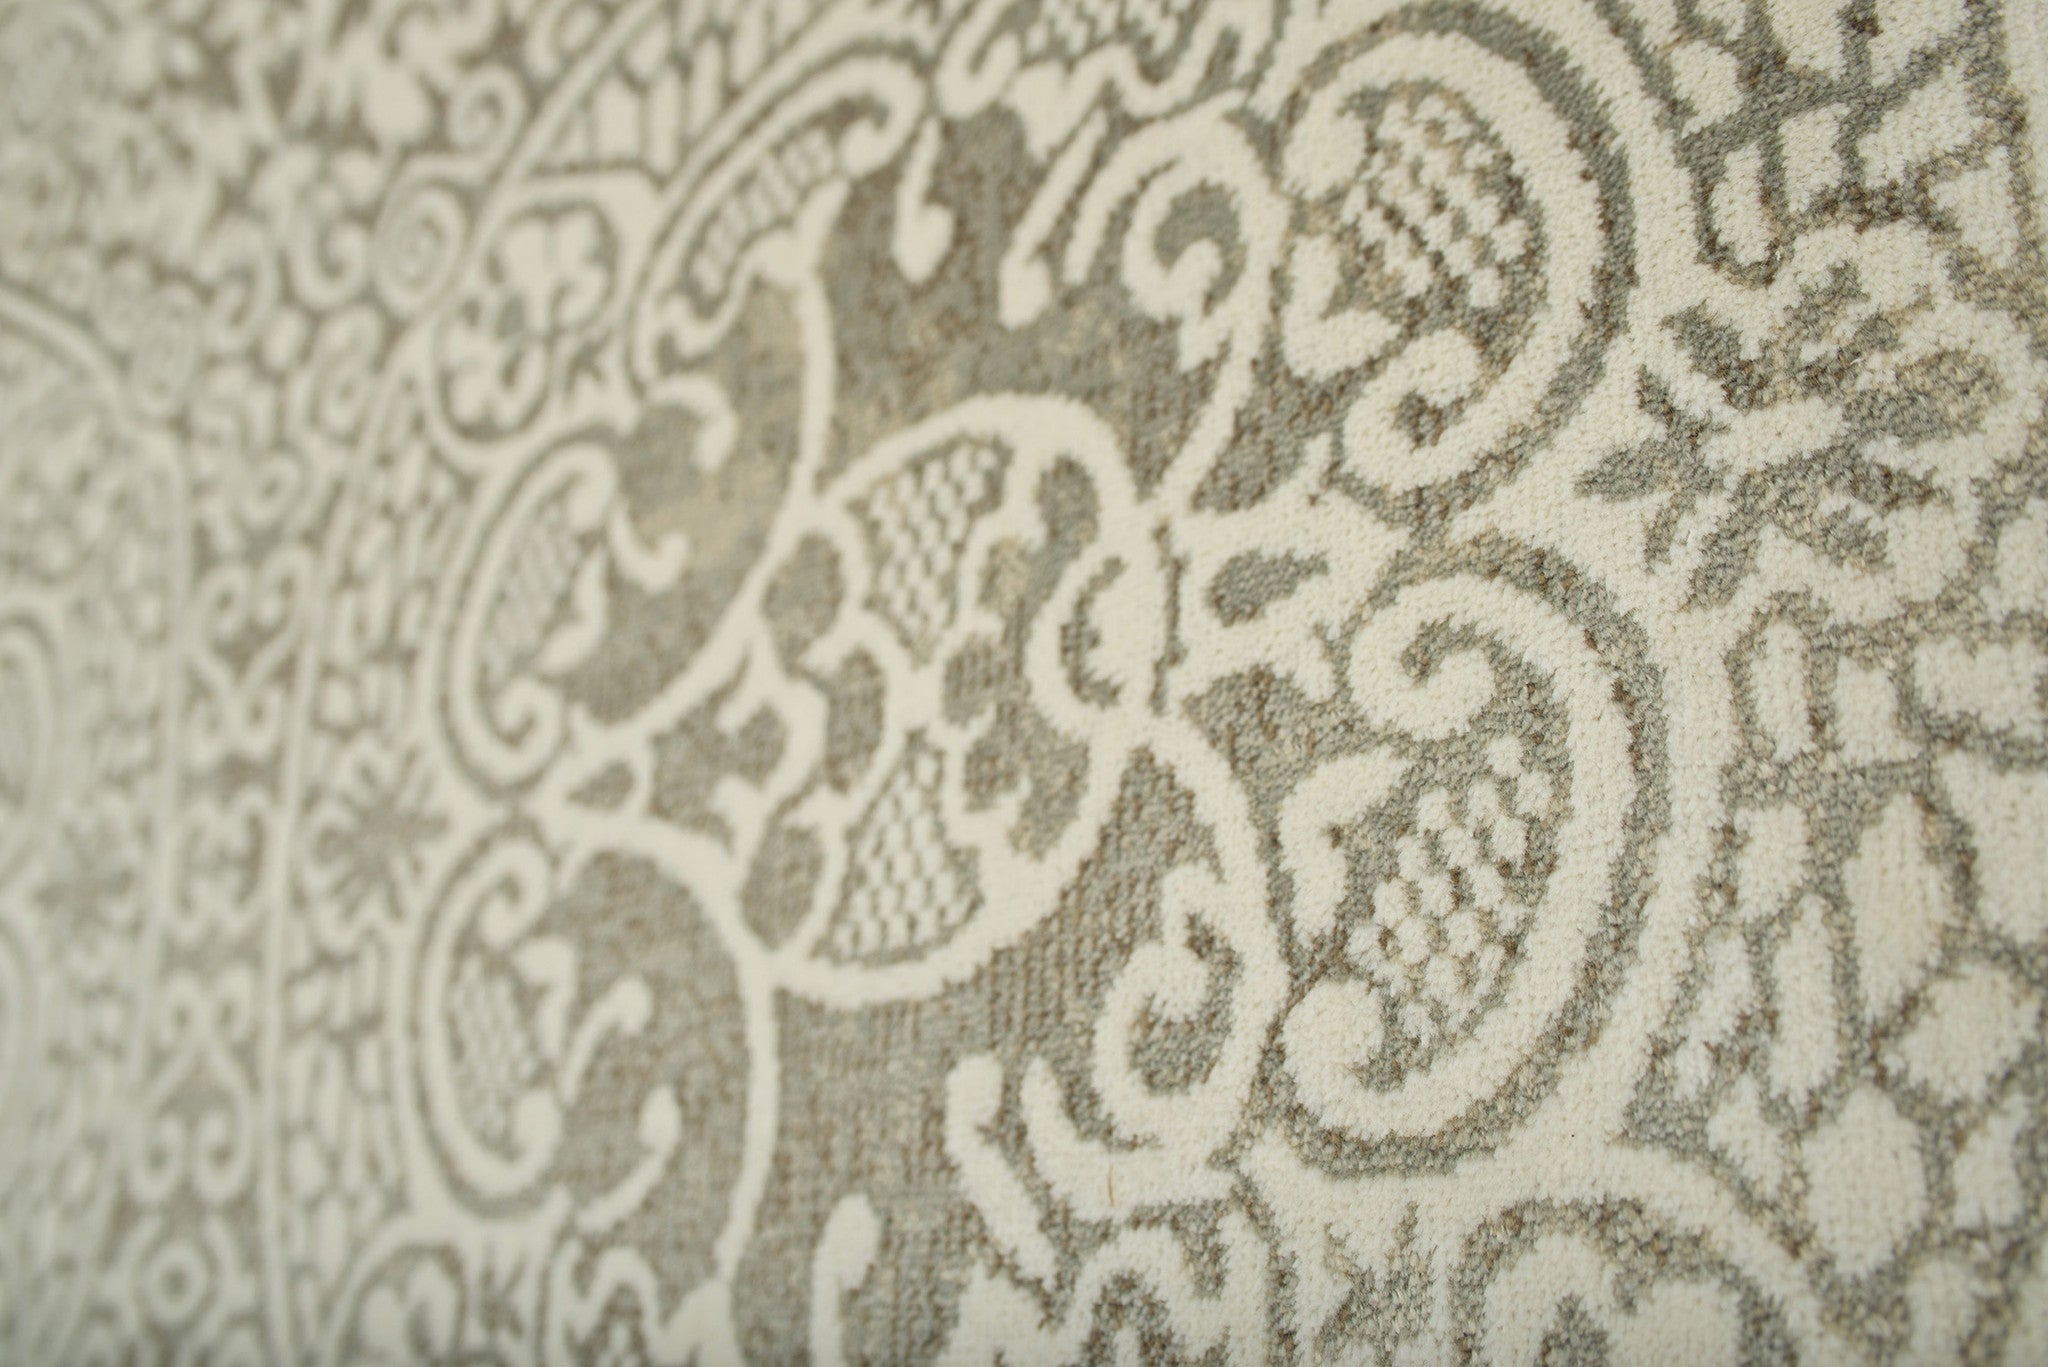 Faded Silver Gray and Ivory Transitional Fringe Rug Woodwaves